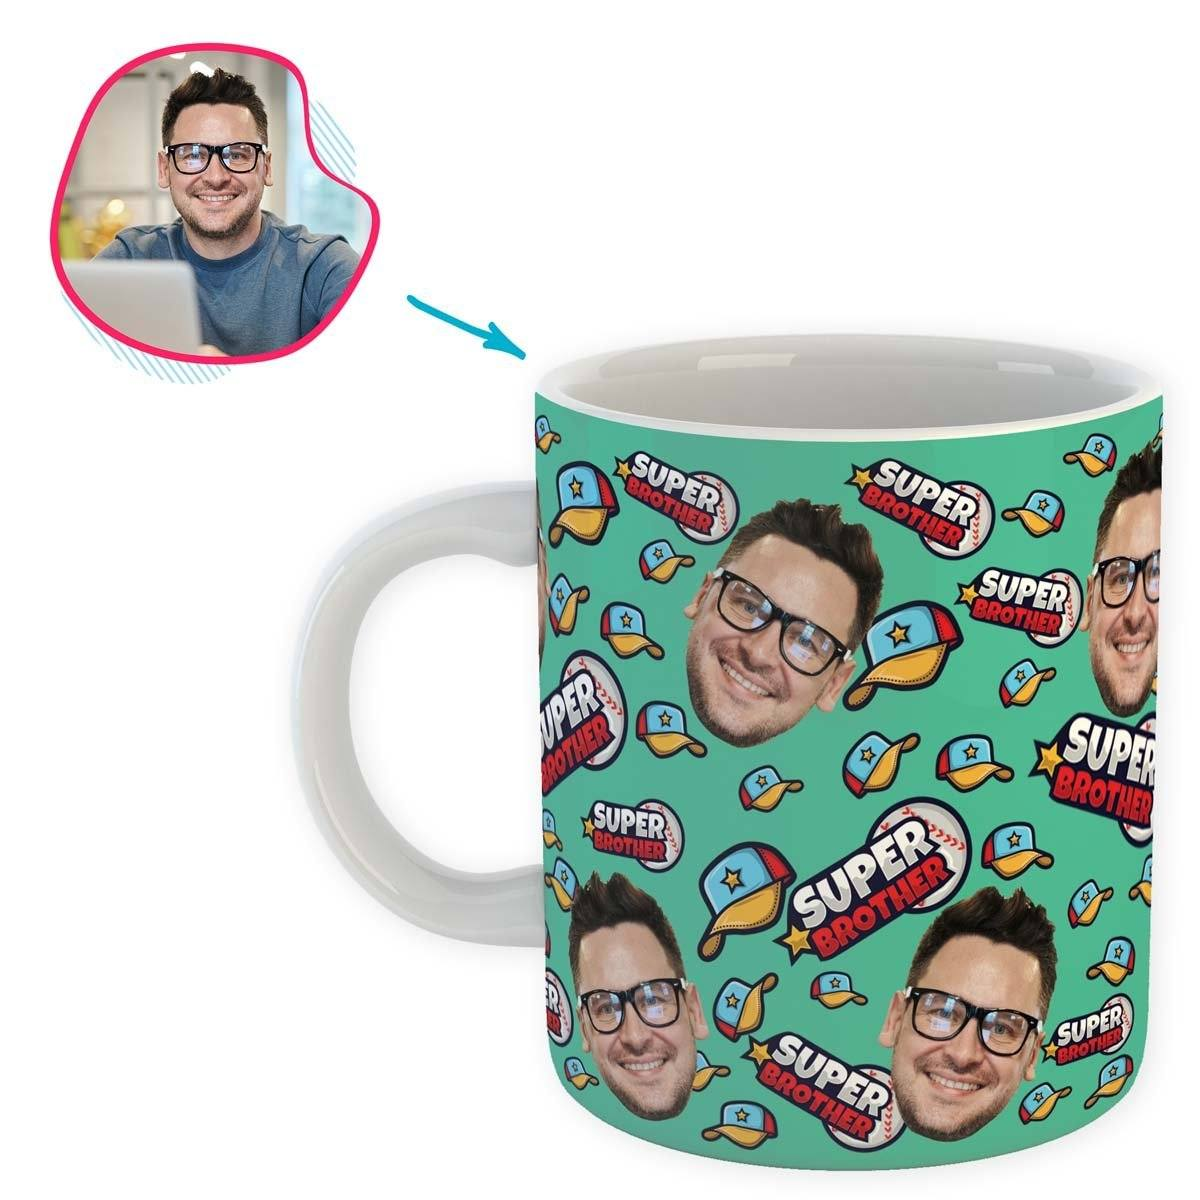 mint Super Brother mug personalized with photo of face printed on it